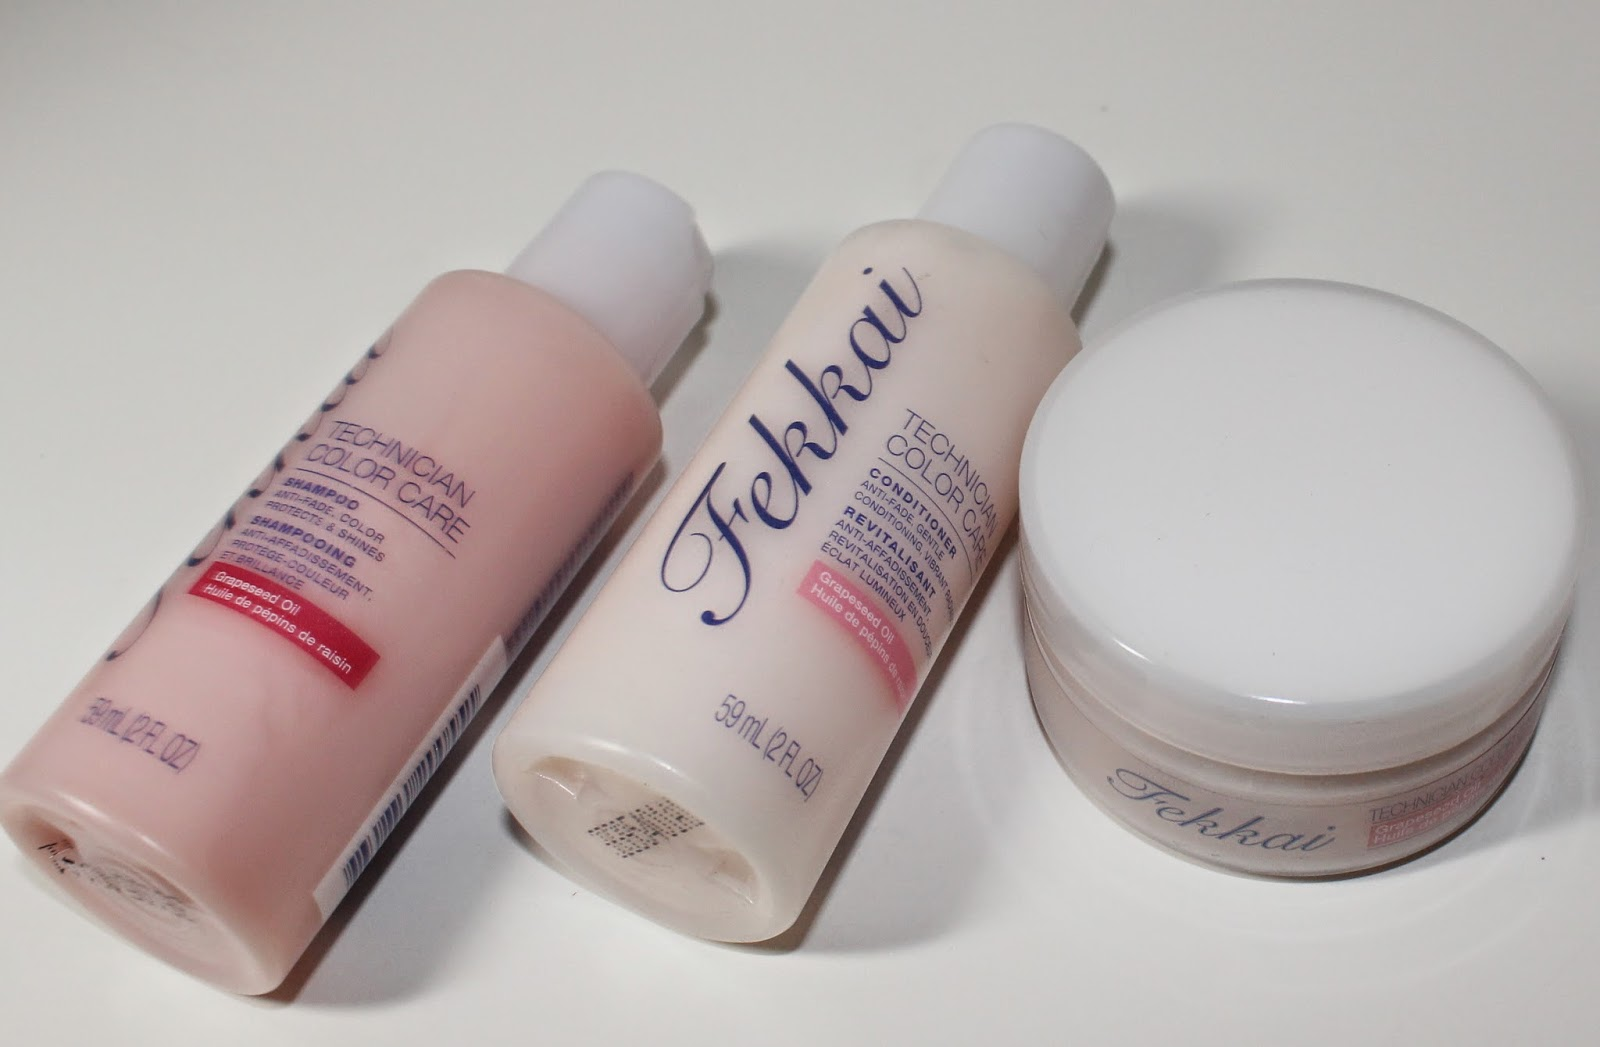 Fekkai Technician Color Care Mini Collection